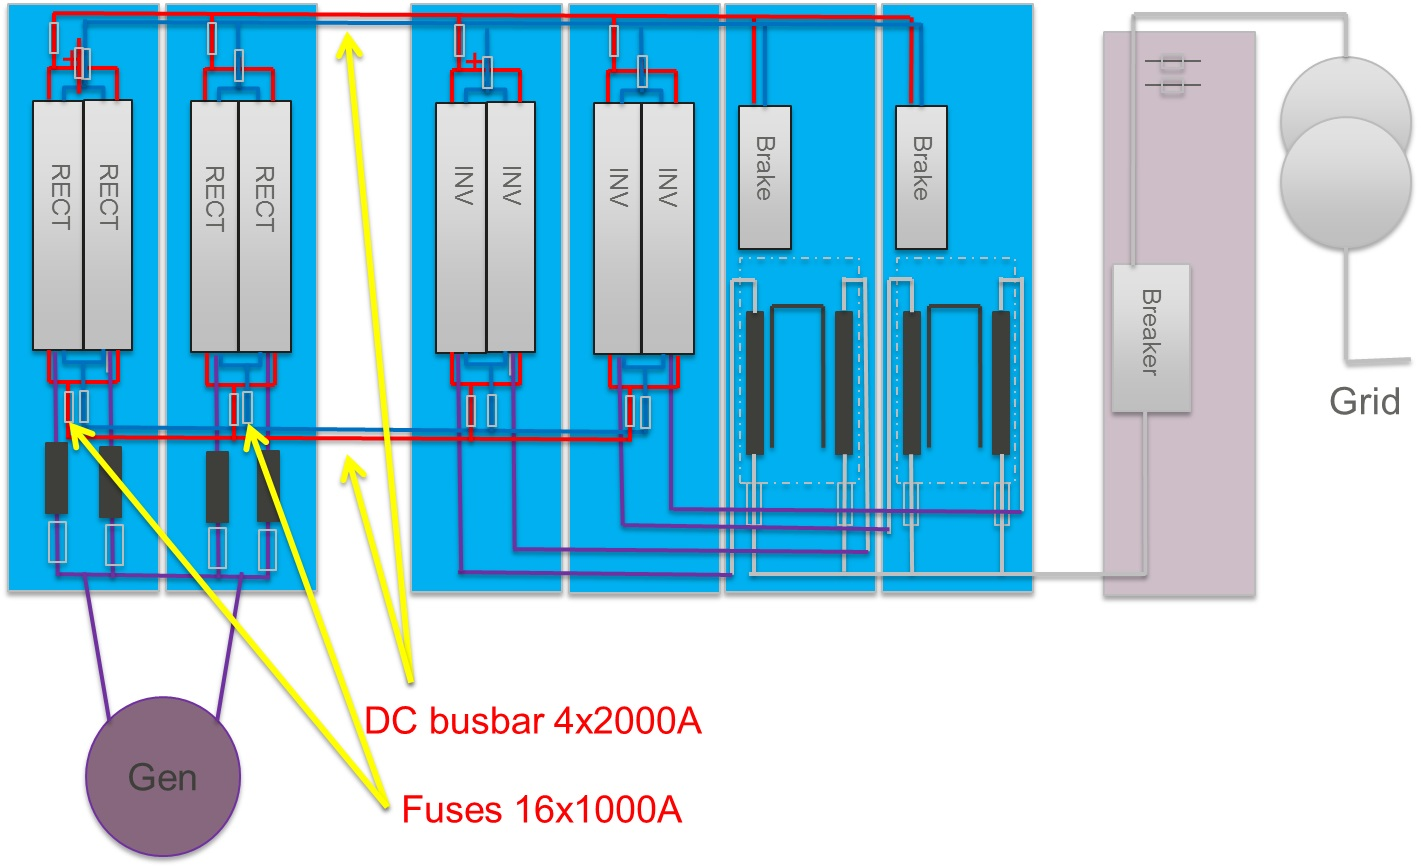 Marine Ground Bridge Rectifier Schematic Trusted Wiring Diagrams Diagram Opel Blazer Montera Power Systems Semikron A Similar System But Using An Alternative Configuration